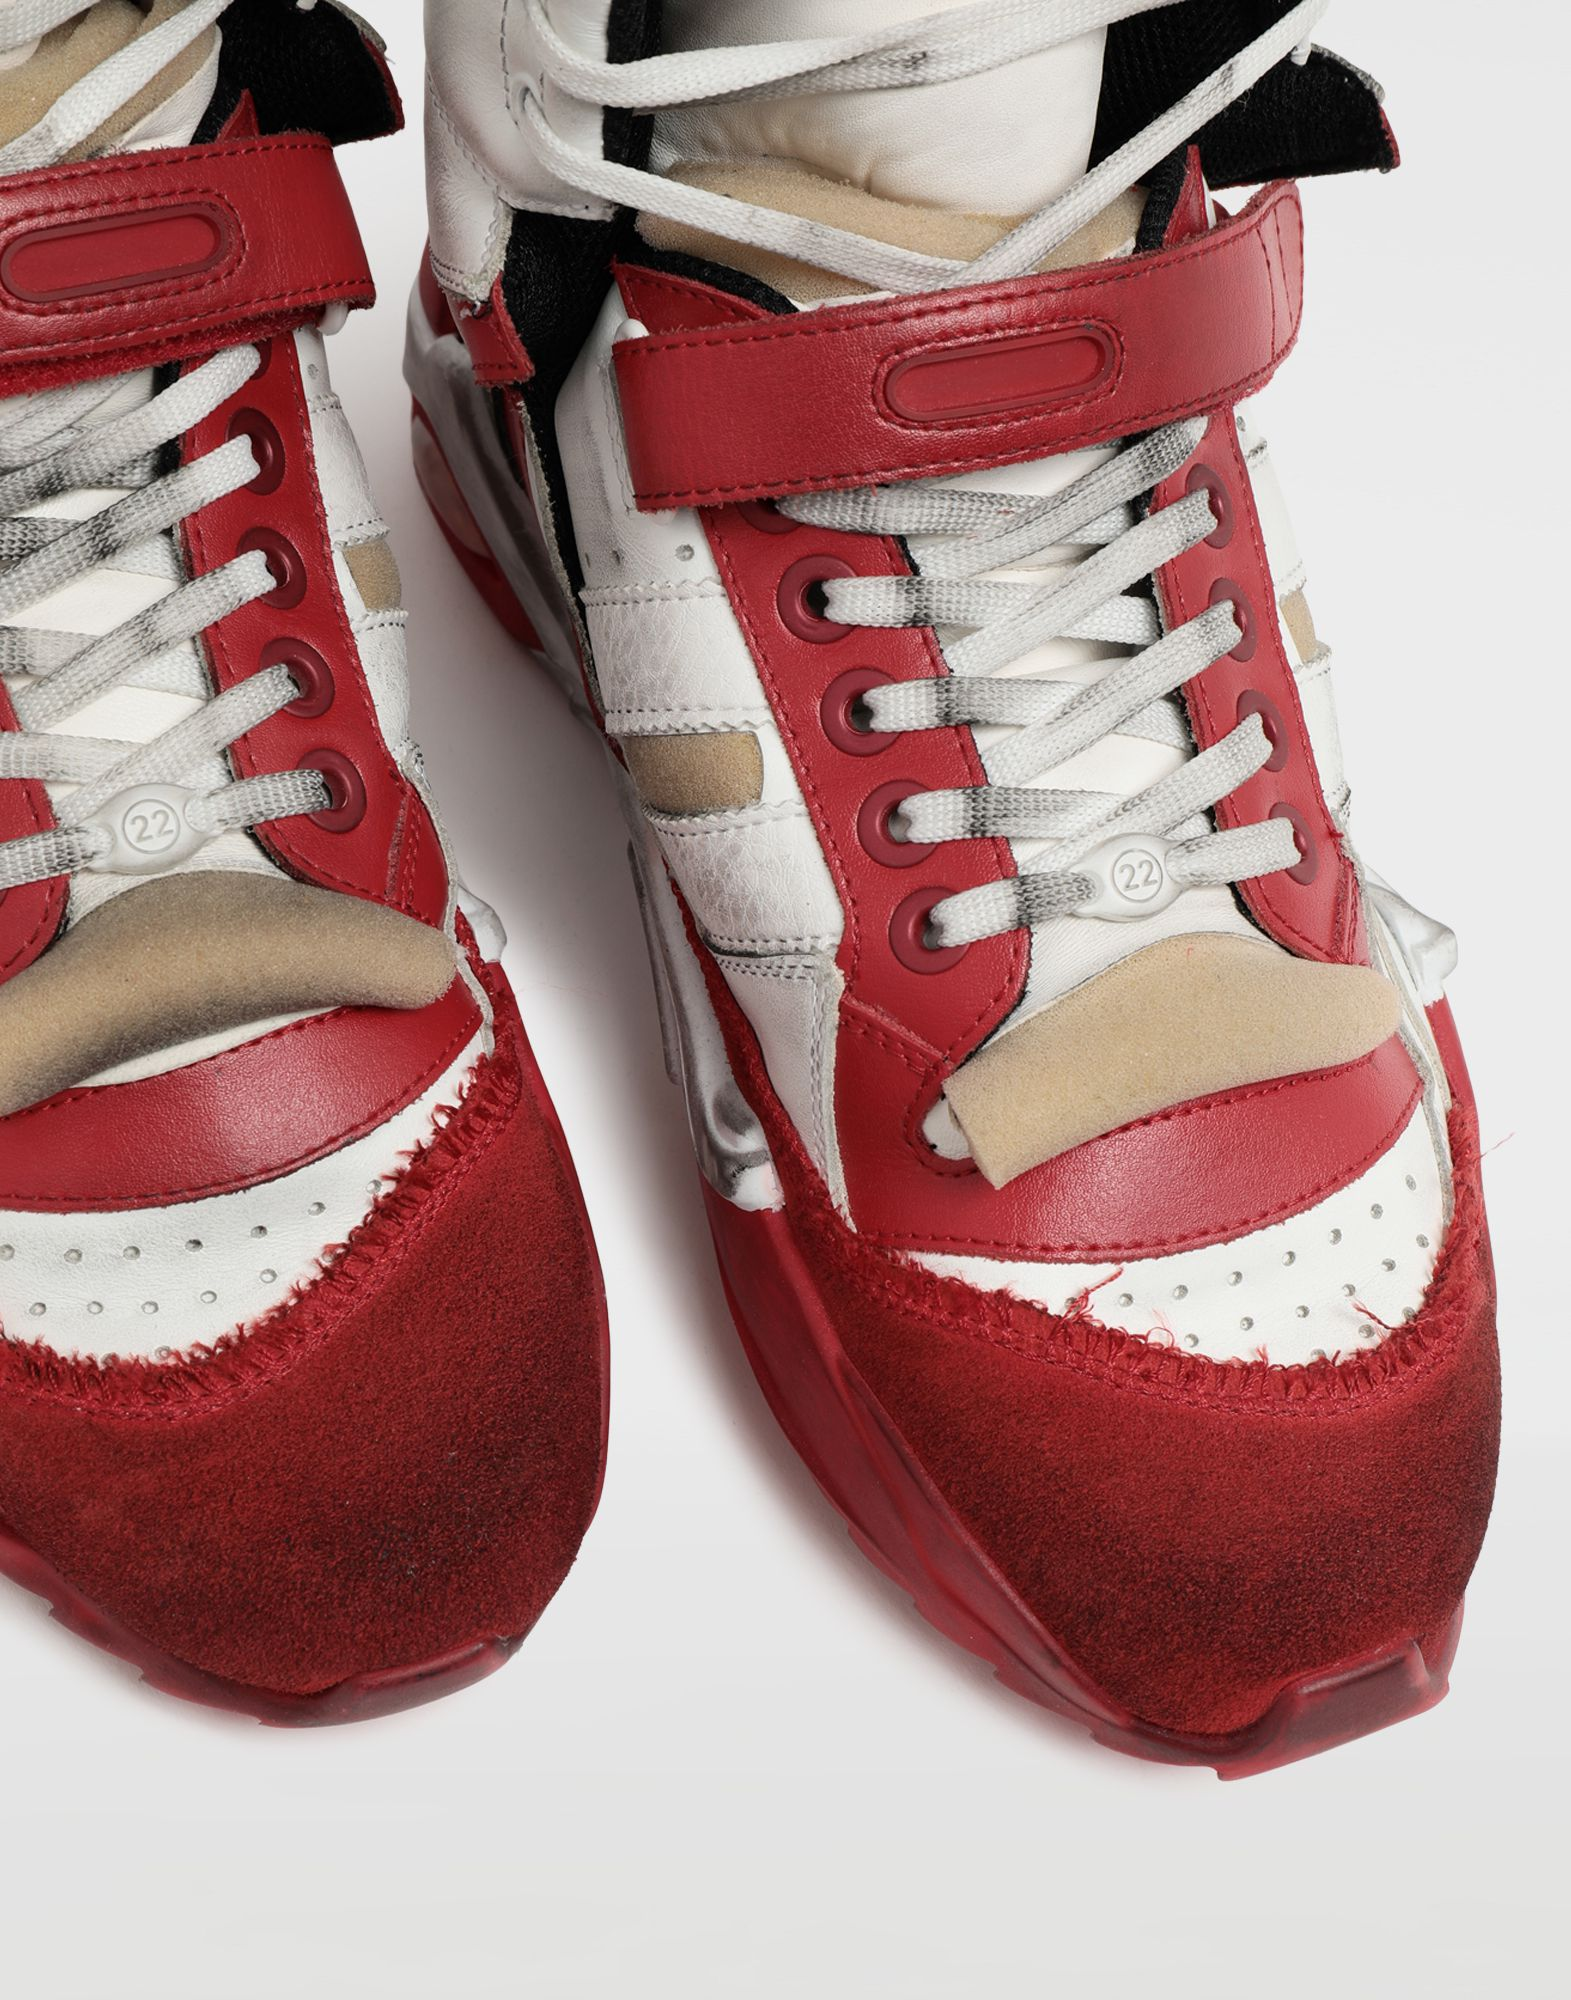 MAISON MARGIELA Retro Fit high top sneakers Sneakers Man a